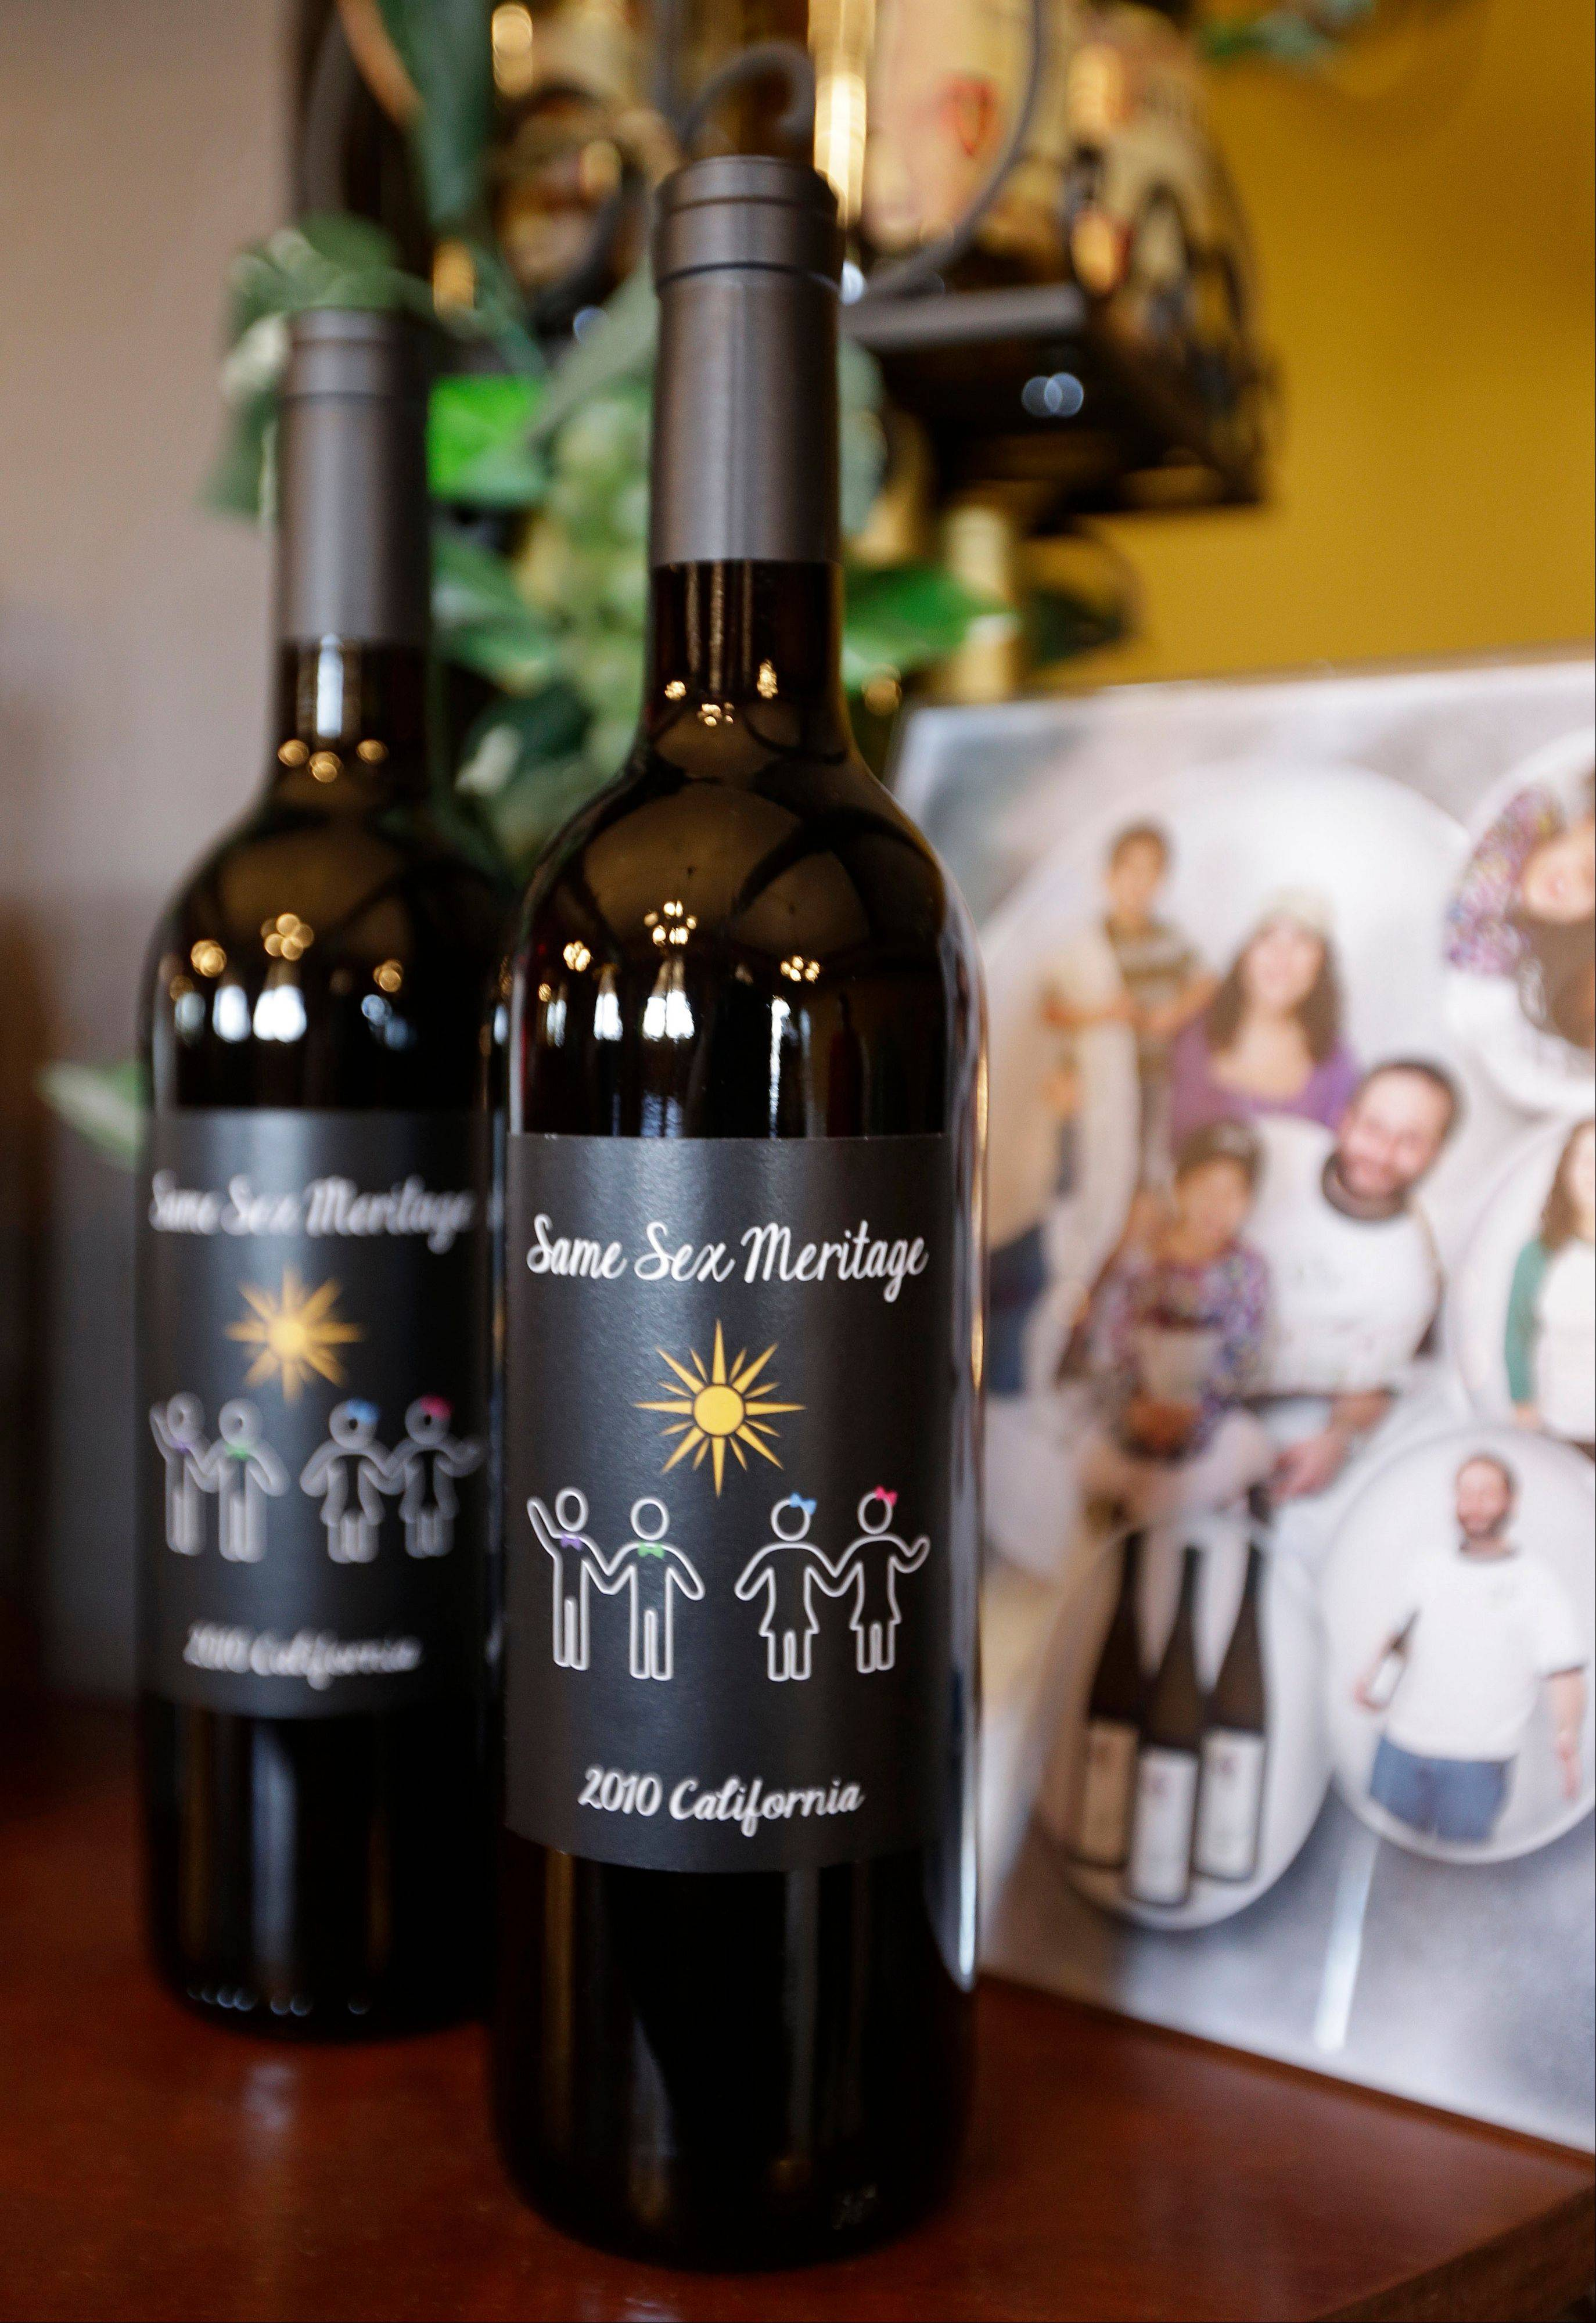 Gay marriage has been a hot topic for some months now, so perhaps it's not surprising the wine world has taken note with wines like Same Sex Meritage by Stein Family Wines, that declare their support for same-sex couples right on the label.